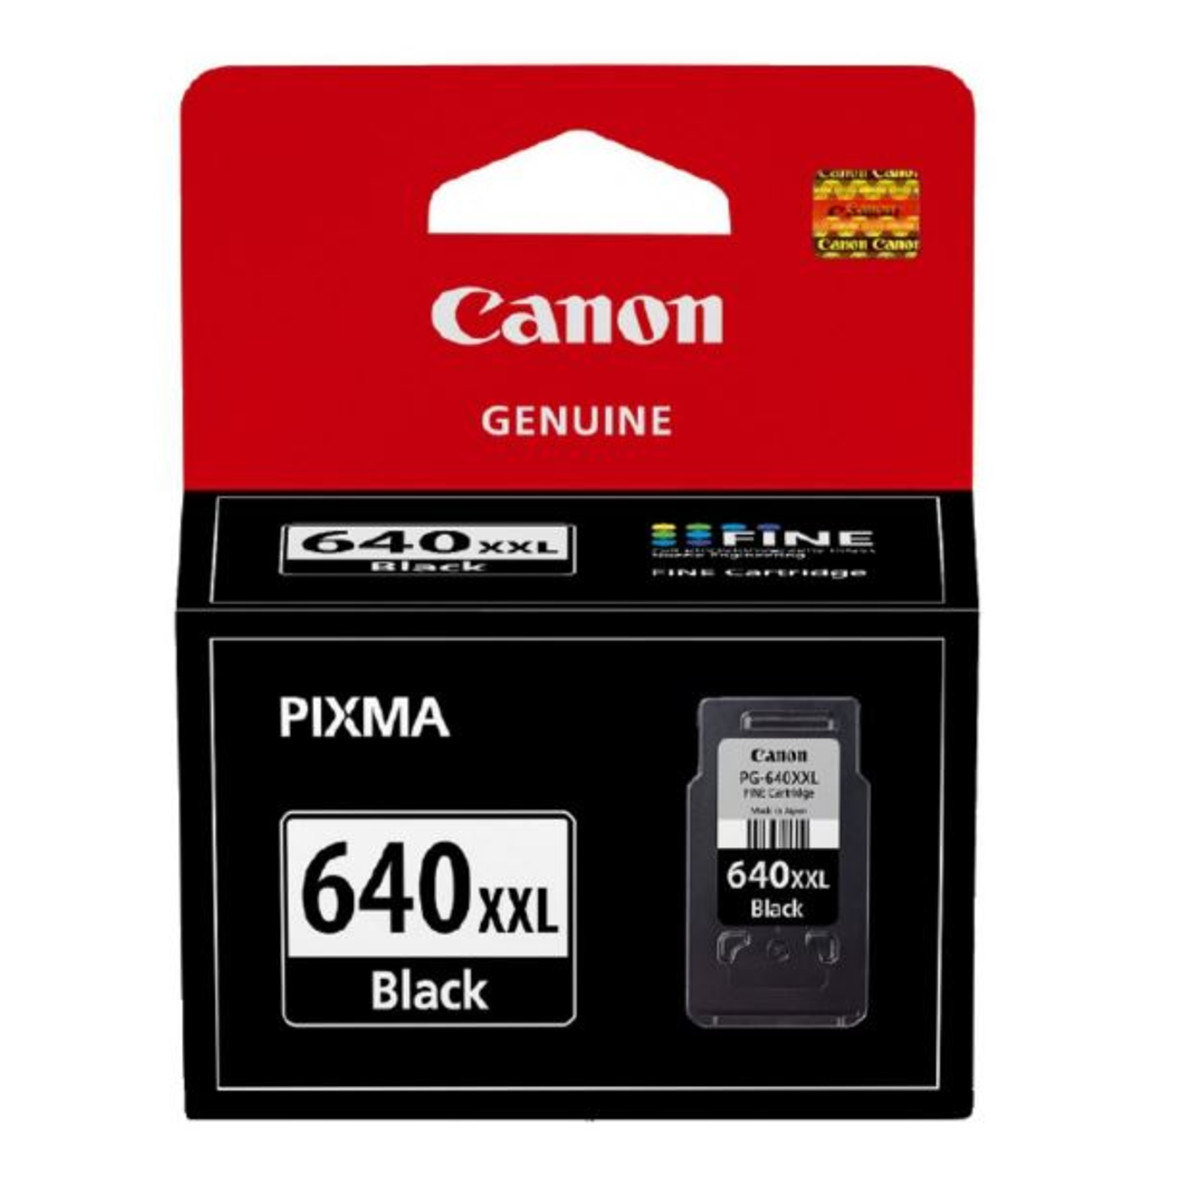 Canon PG640XXL Black Ink Cartridge - Extra High Yield